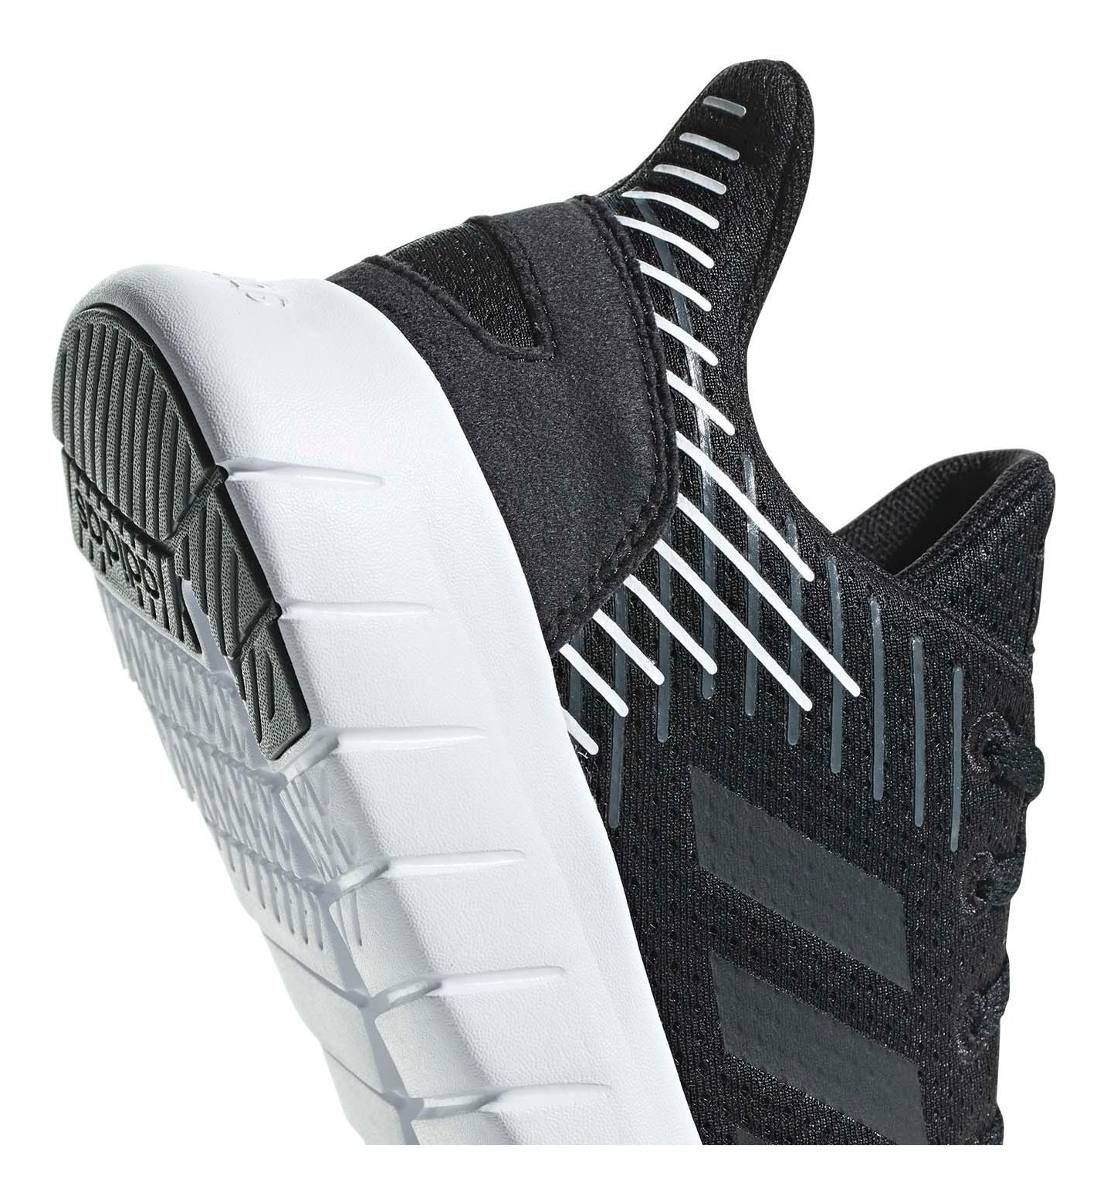 Zapatillas adidas Calibrate f36339 adidas Performance